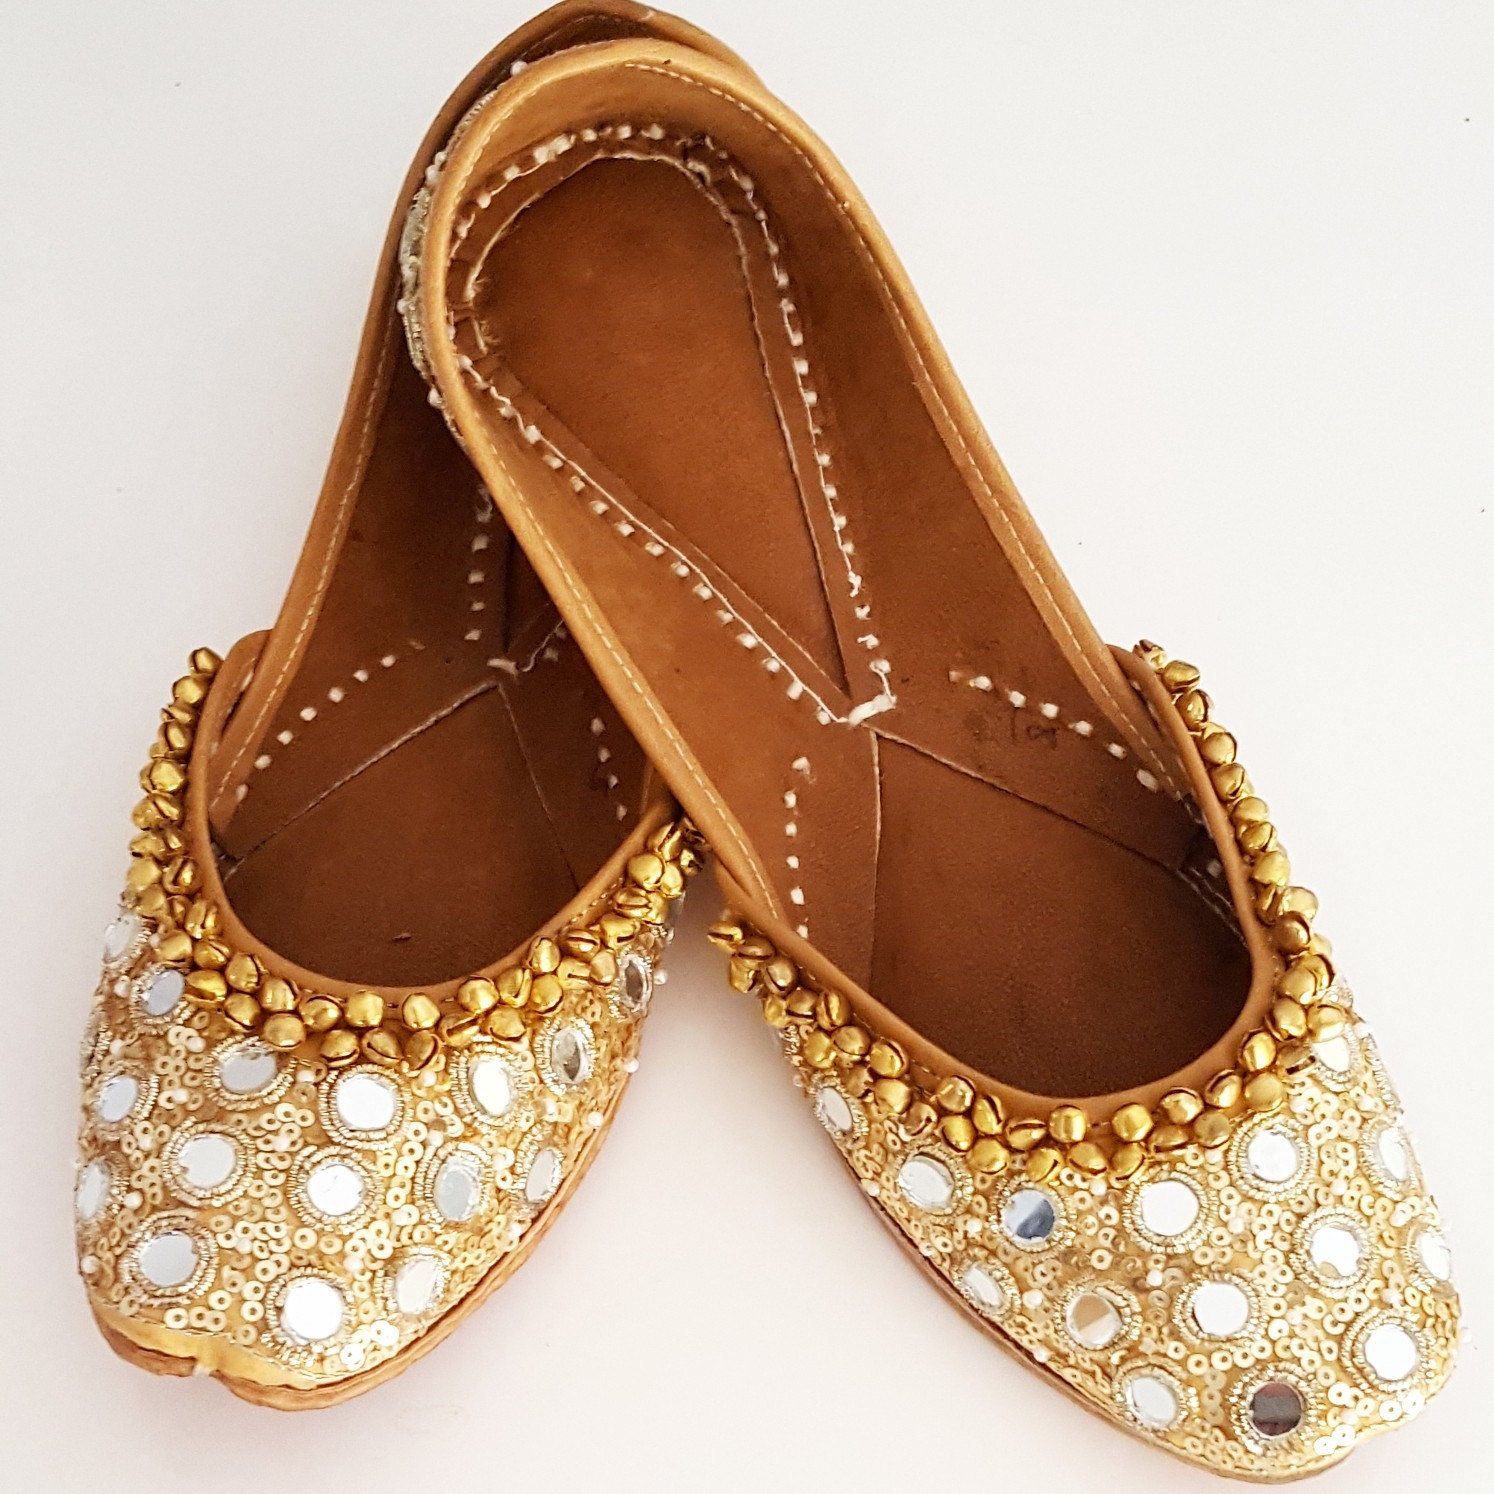 Gold Ballet Flats Punjabi Jutti with Mirror Work are now available